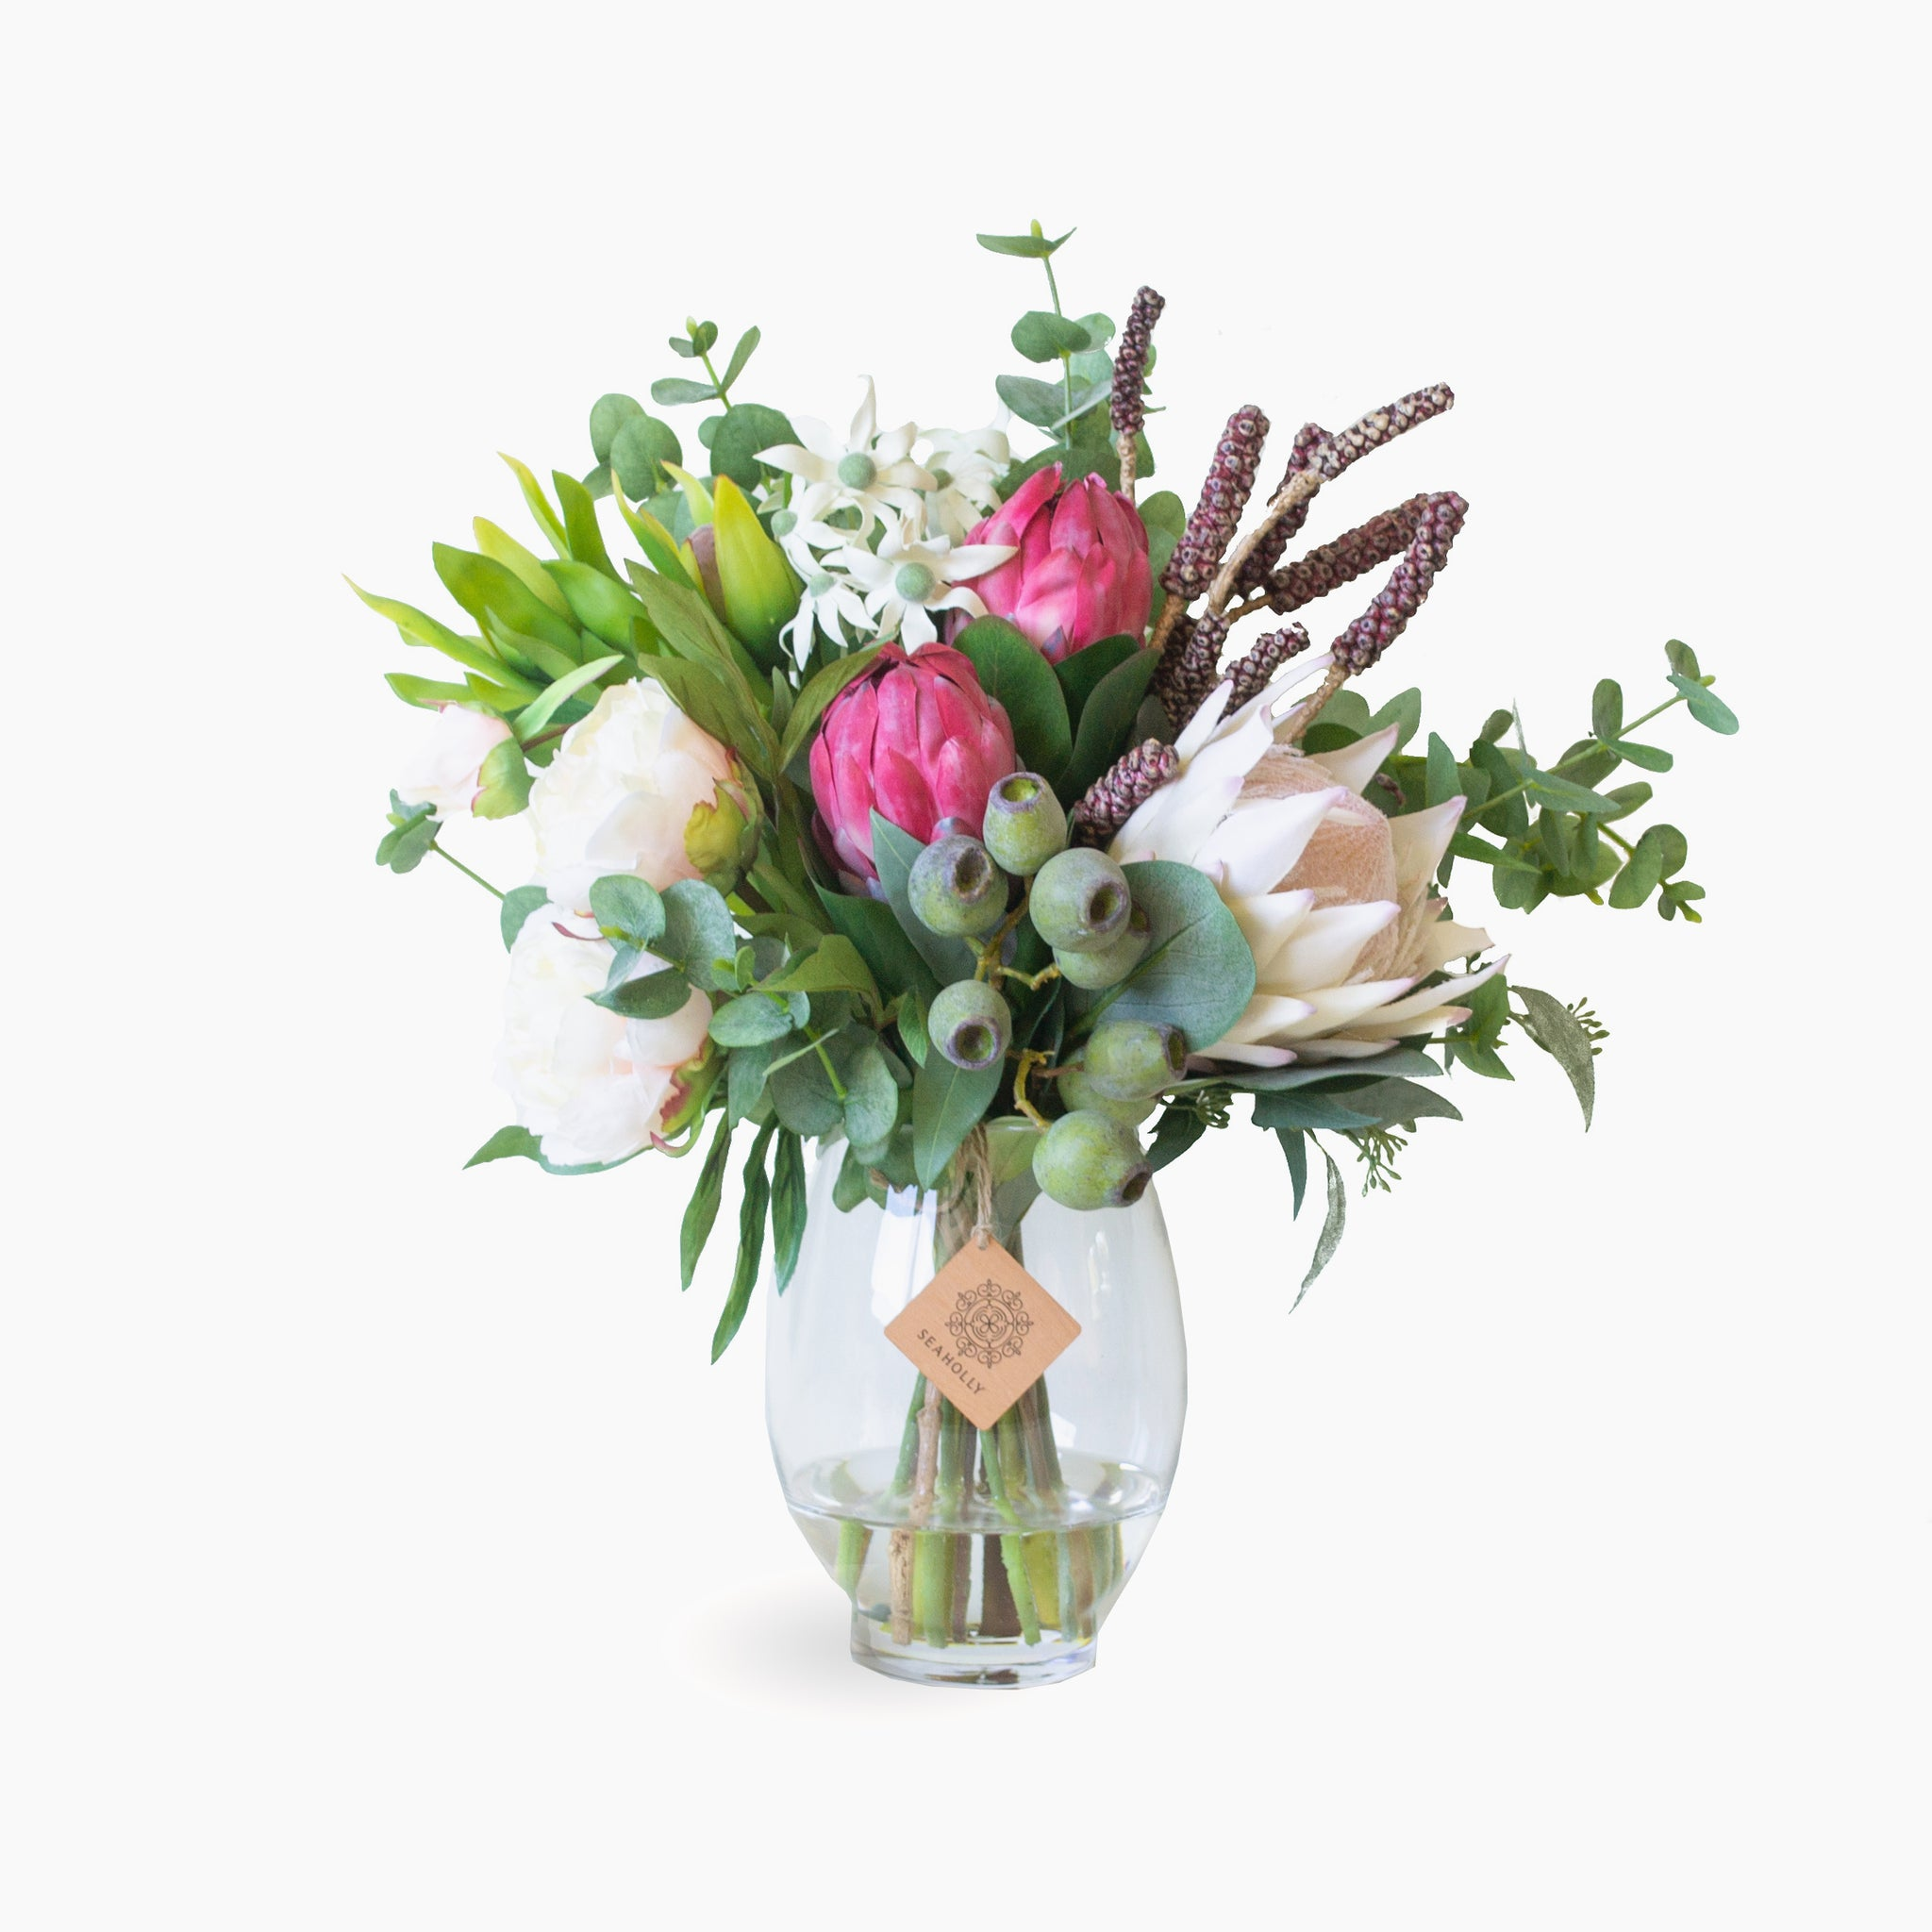 Queen protea, peony and leucadendron with flannel flowers and bottlebrush pods